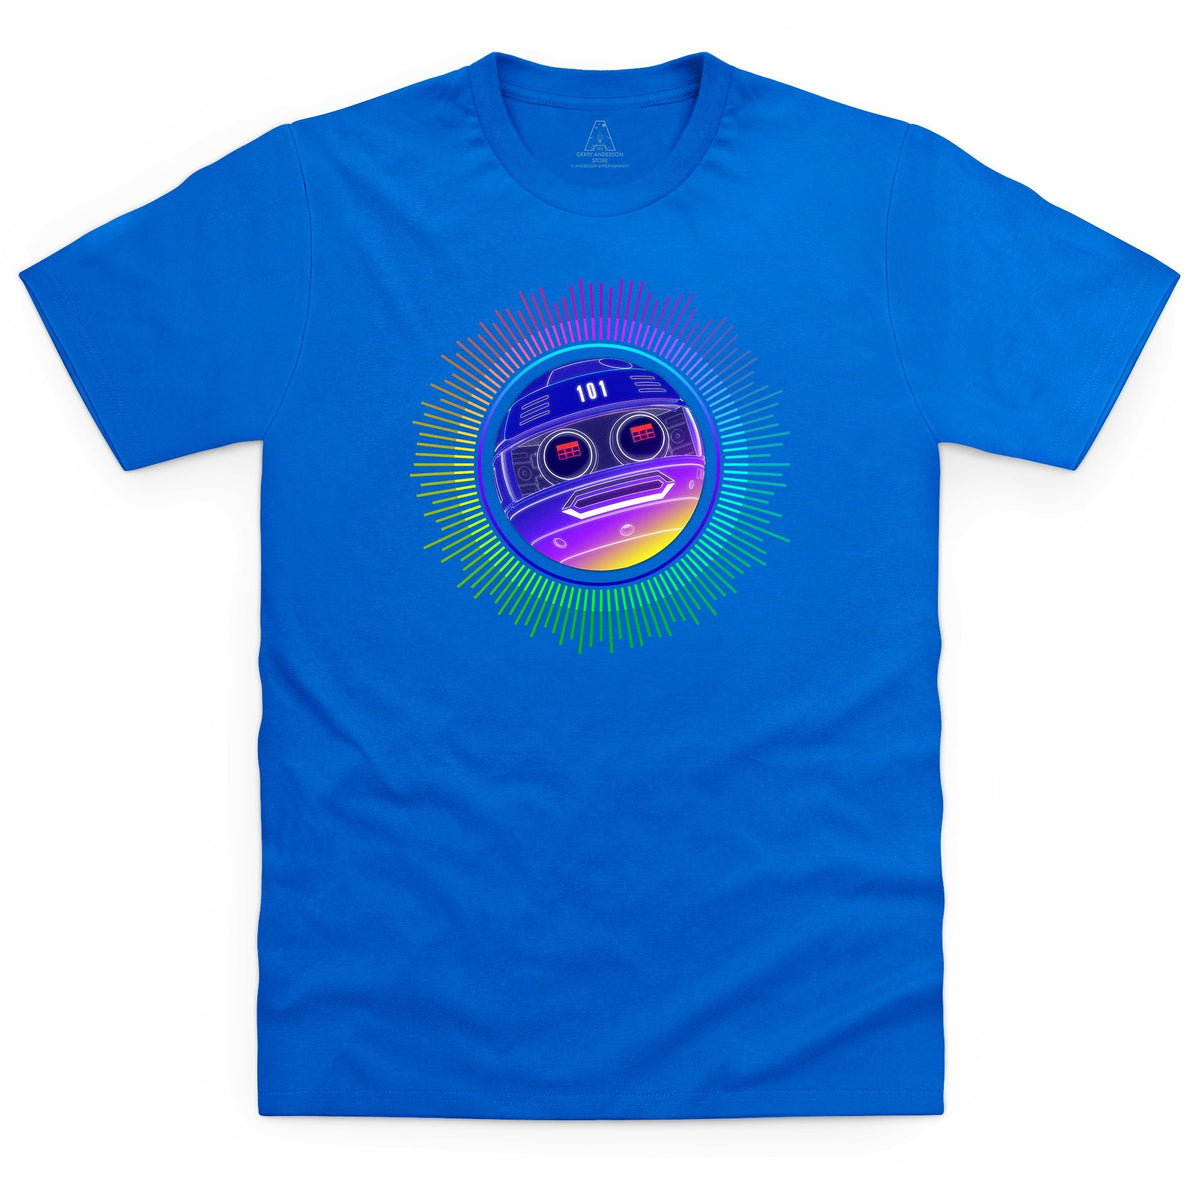 Terrahawks Zeroid Neon Kid's T-Shirt [Official & Exclusive] - The Gerry Anderson Store